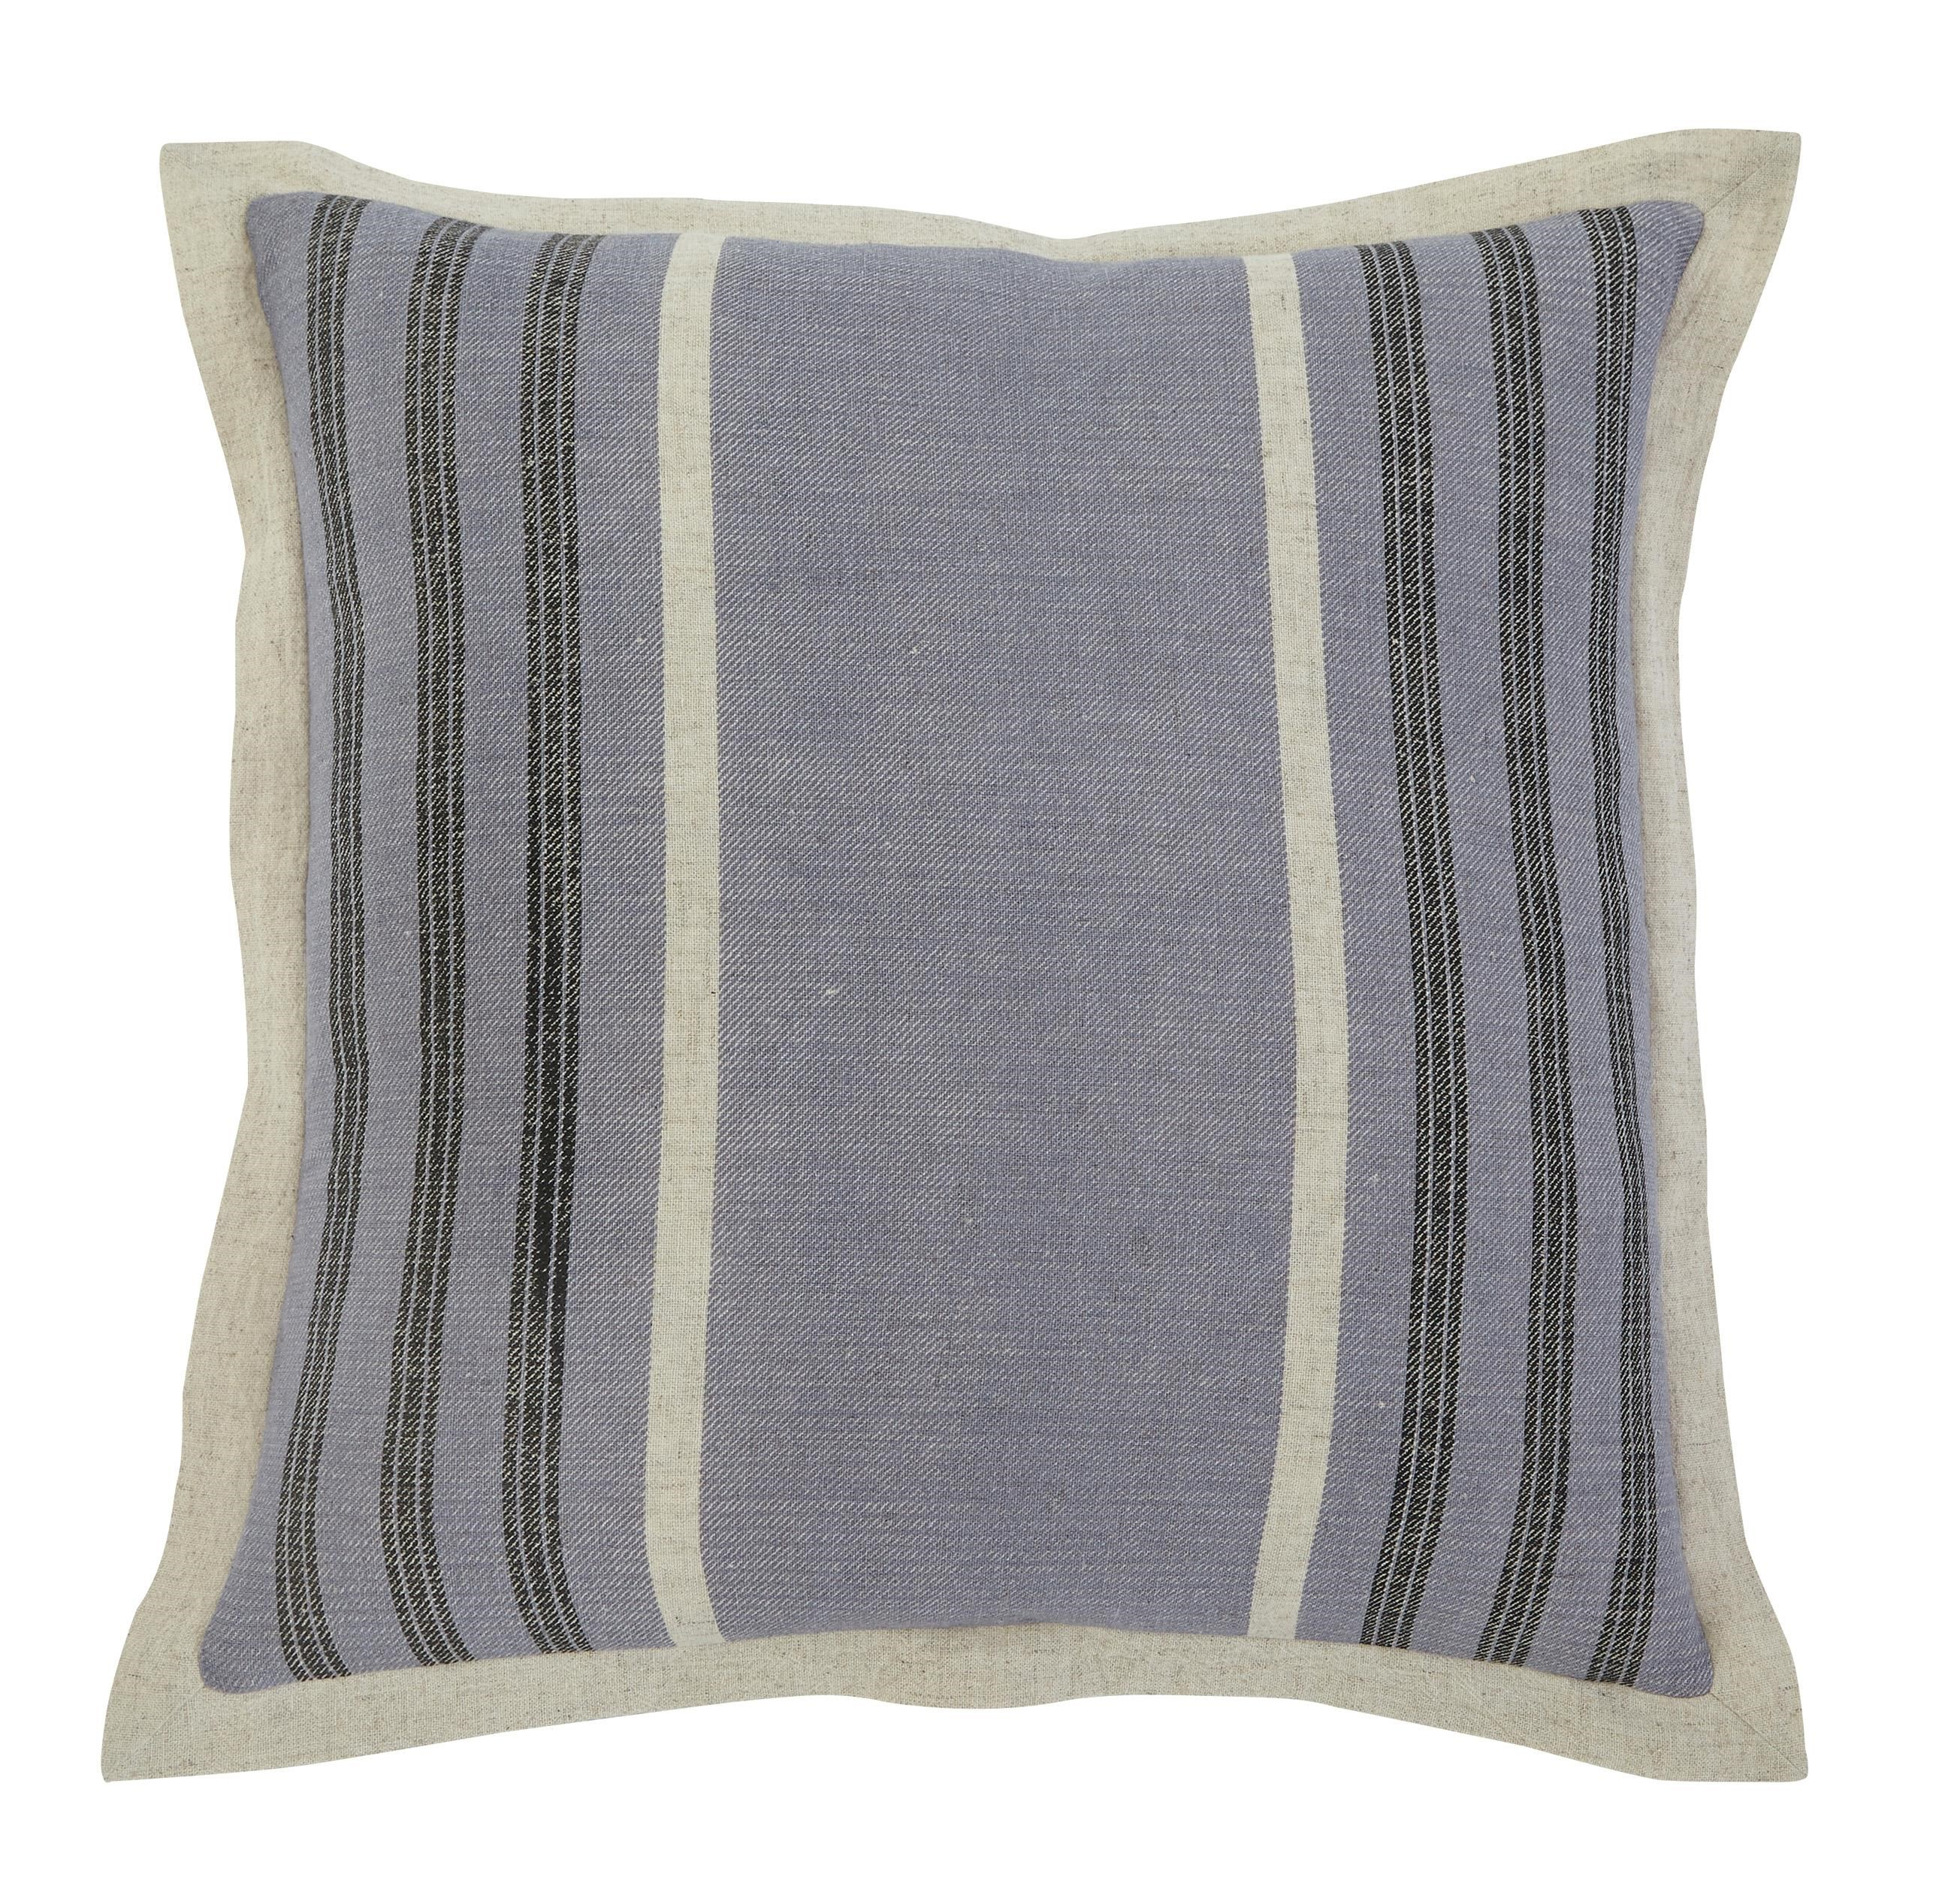 Signature Design by Ashley Pillows Striped Blue Beck s